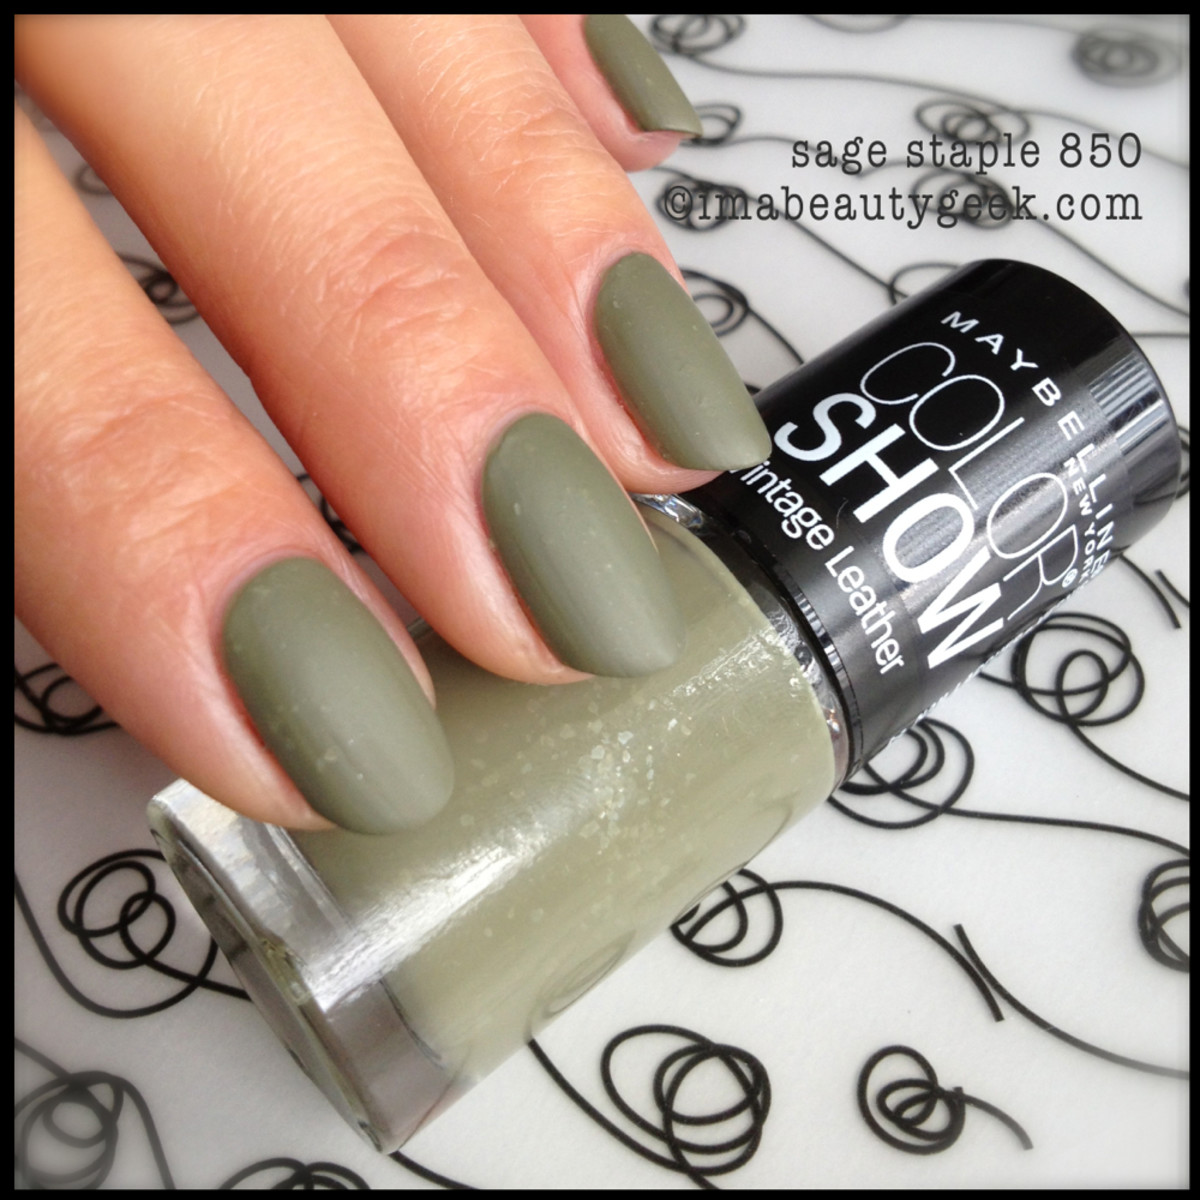 Maybelline Sage Staple - Vintage Leather Collection 2013